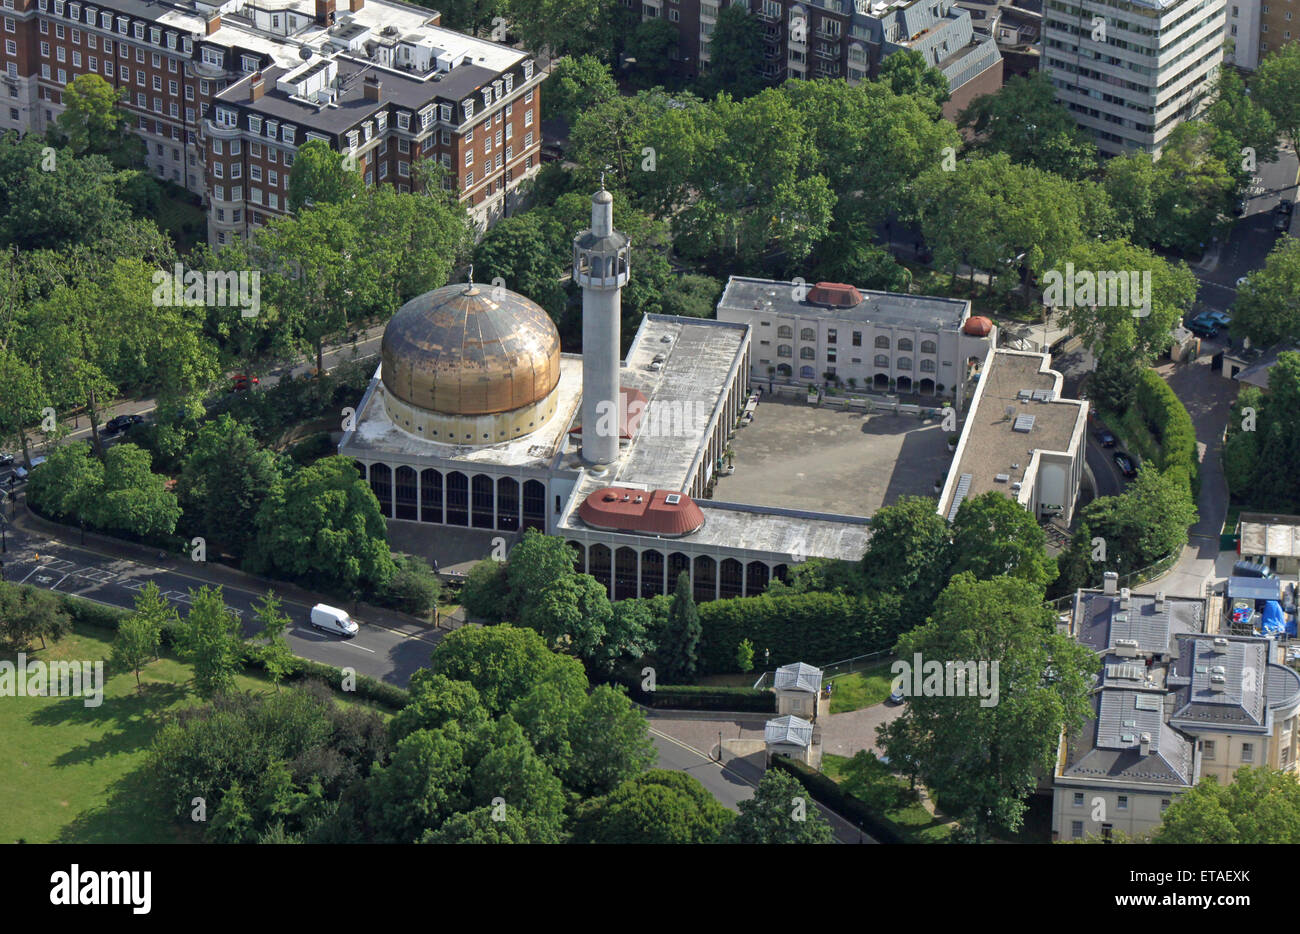 aerial view of The Islamic Cultural Centre and The London Central Mosque, near Regents Park, London, UK Stock Photo